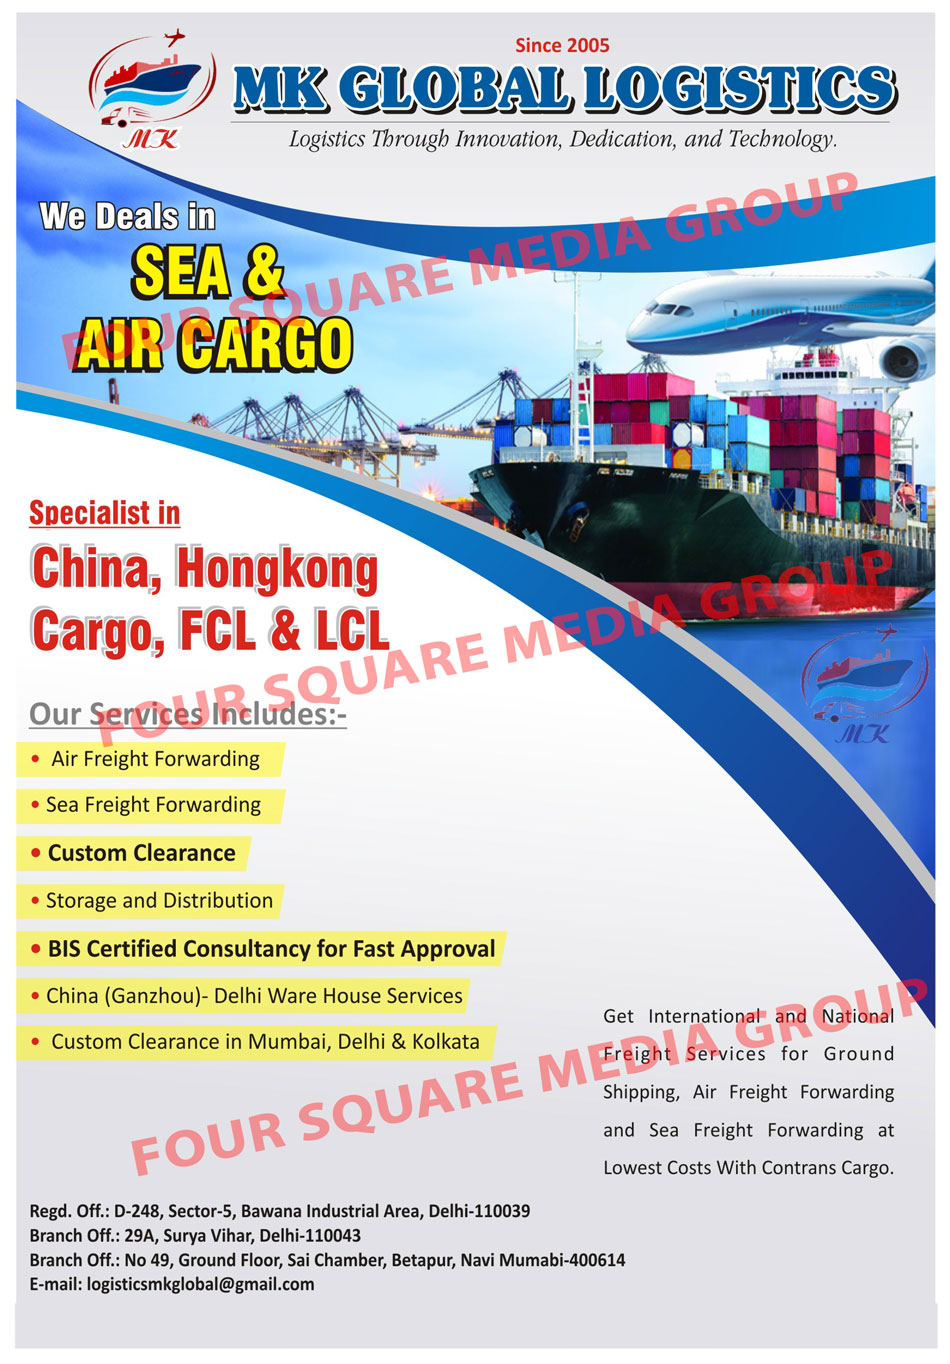 Sea Cargo Services, Air Cargo Services, Freight Services